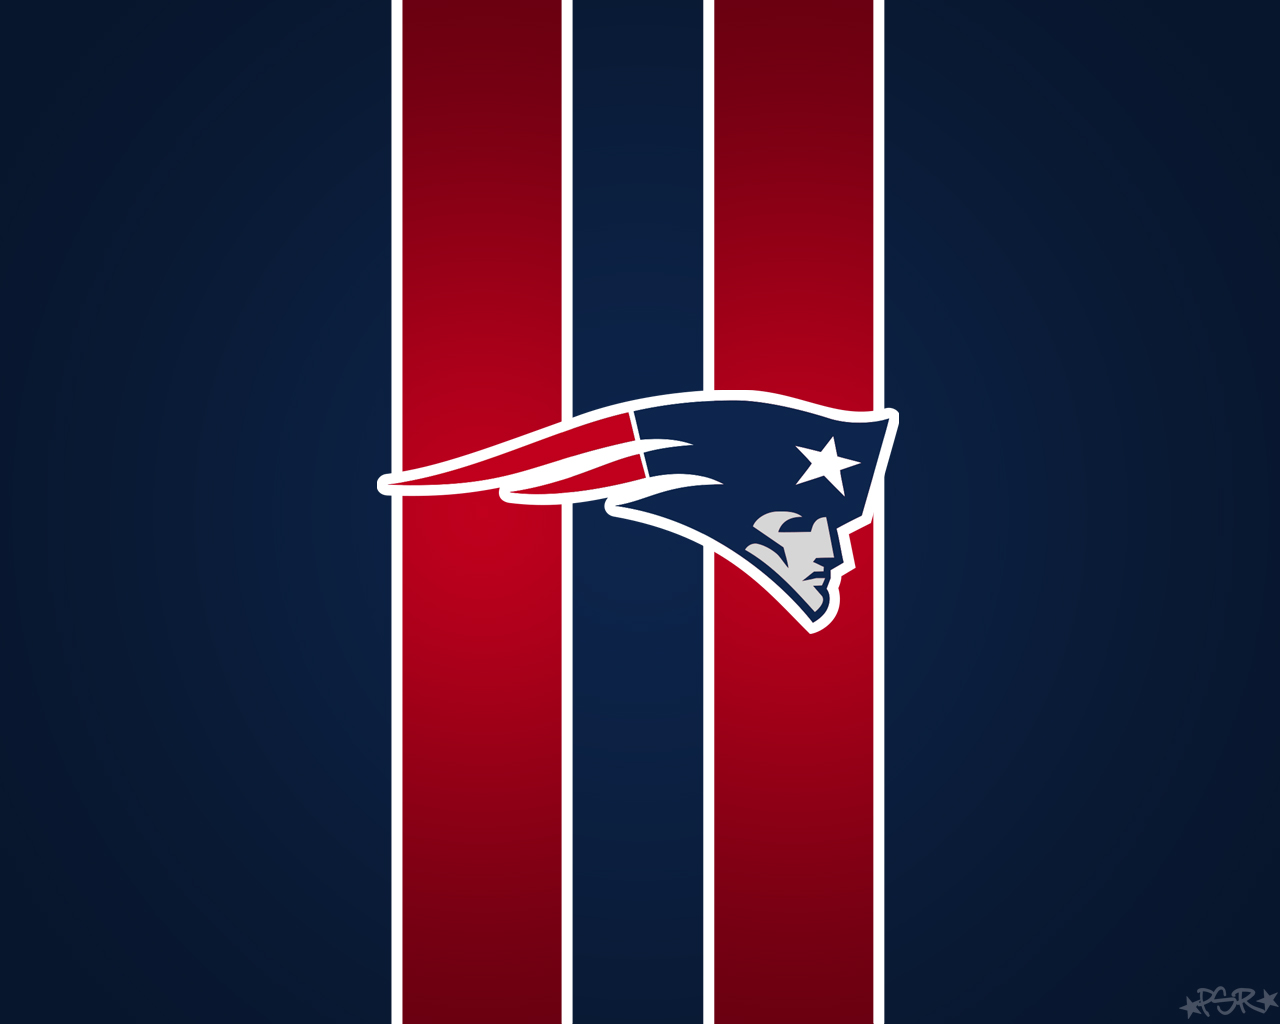 Enjoy this New England Patriots wallpaper background